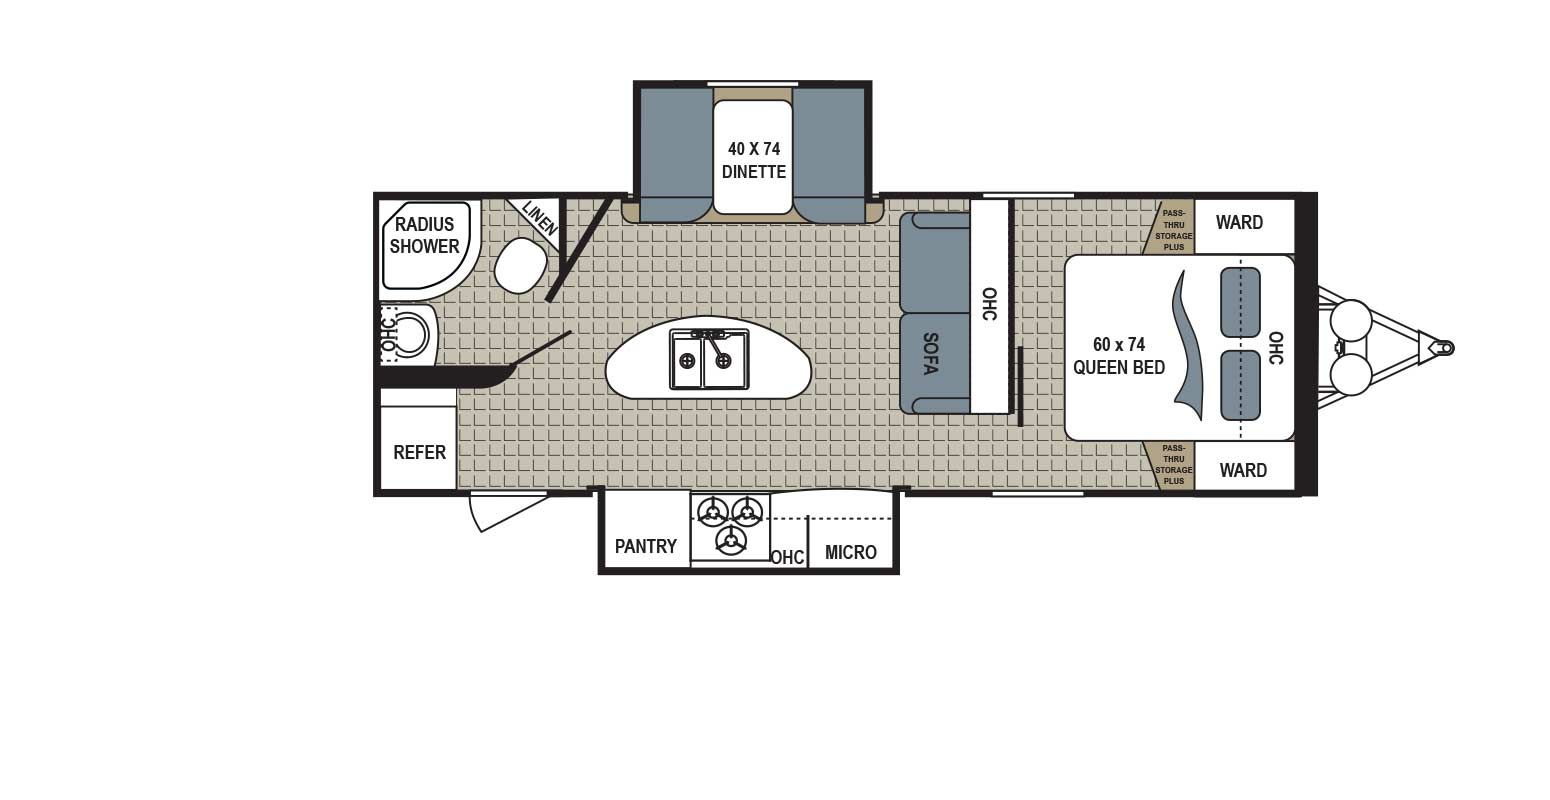 2018 Kodiak Travel Trailers Floor Plans Kodiak 253rbsl Floorplans Detail Camping Tips Dutchmen